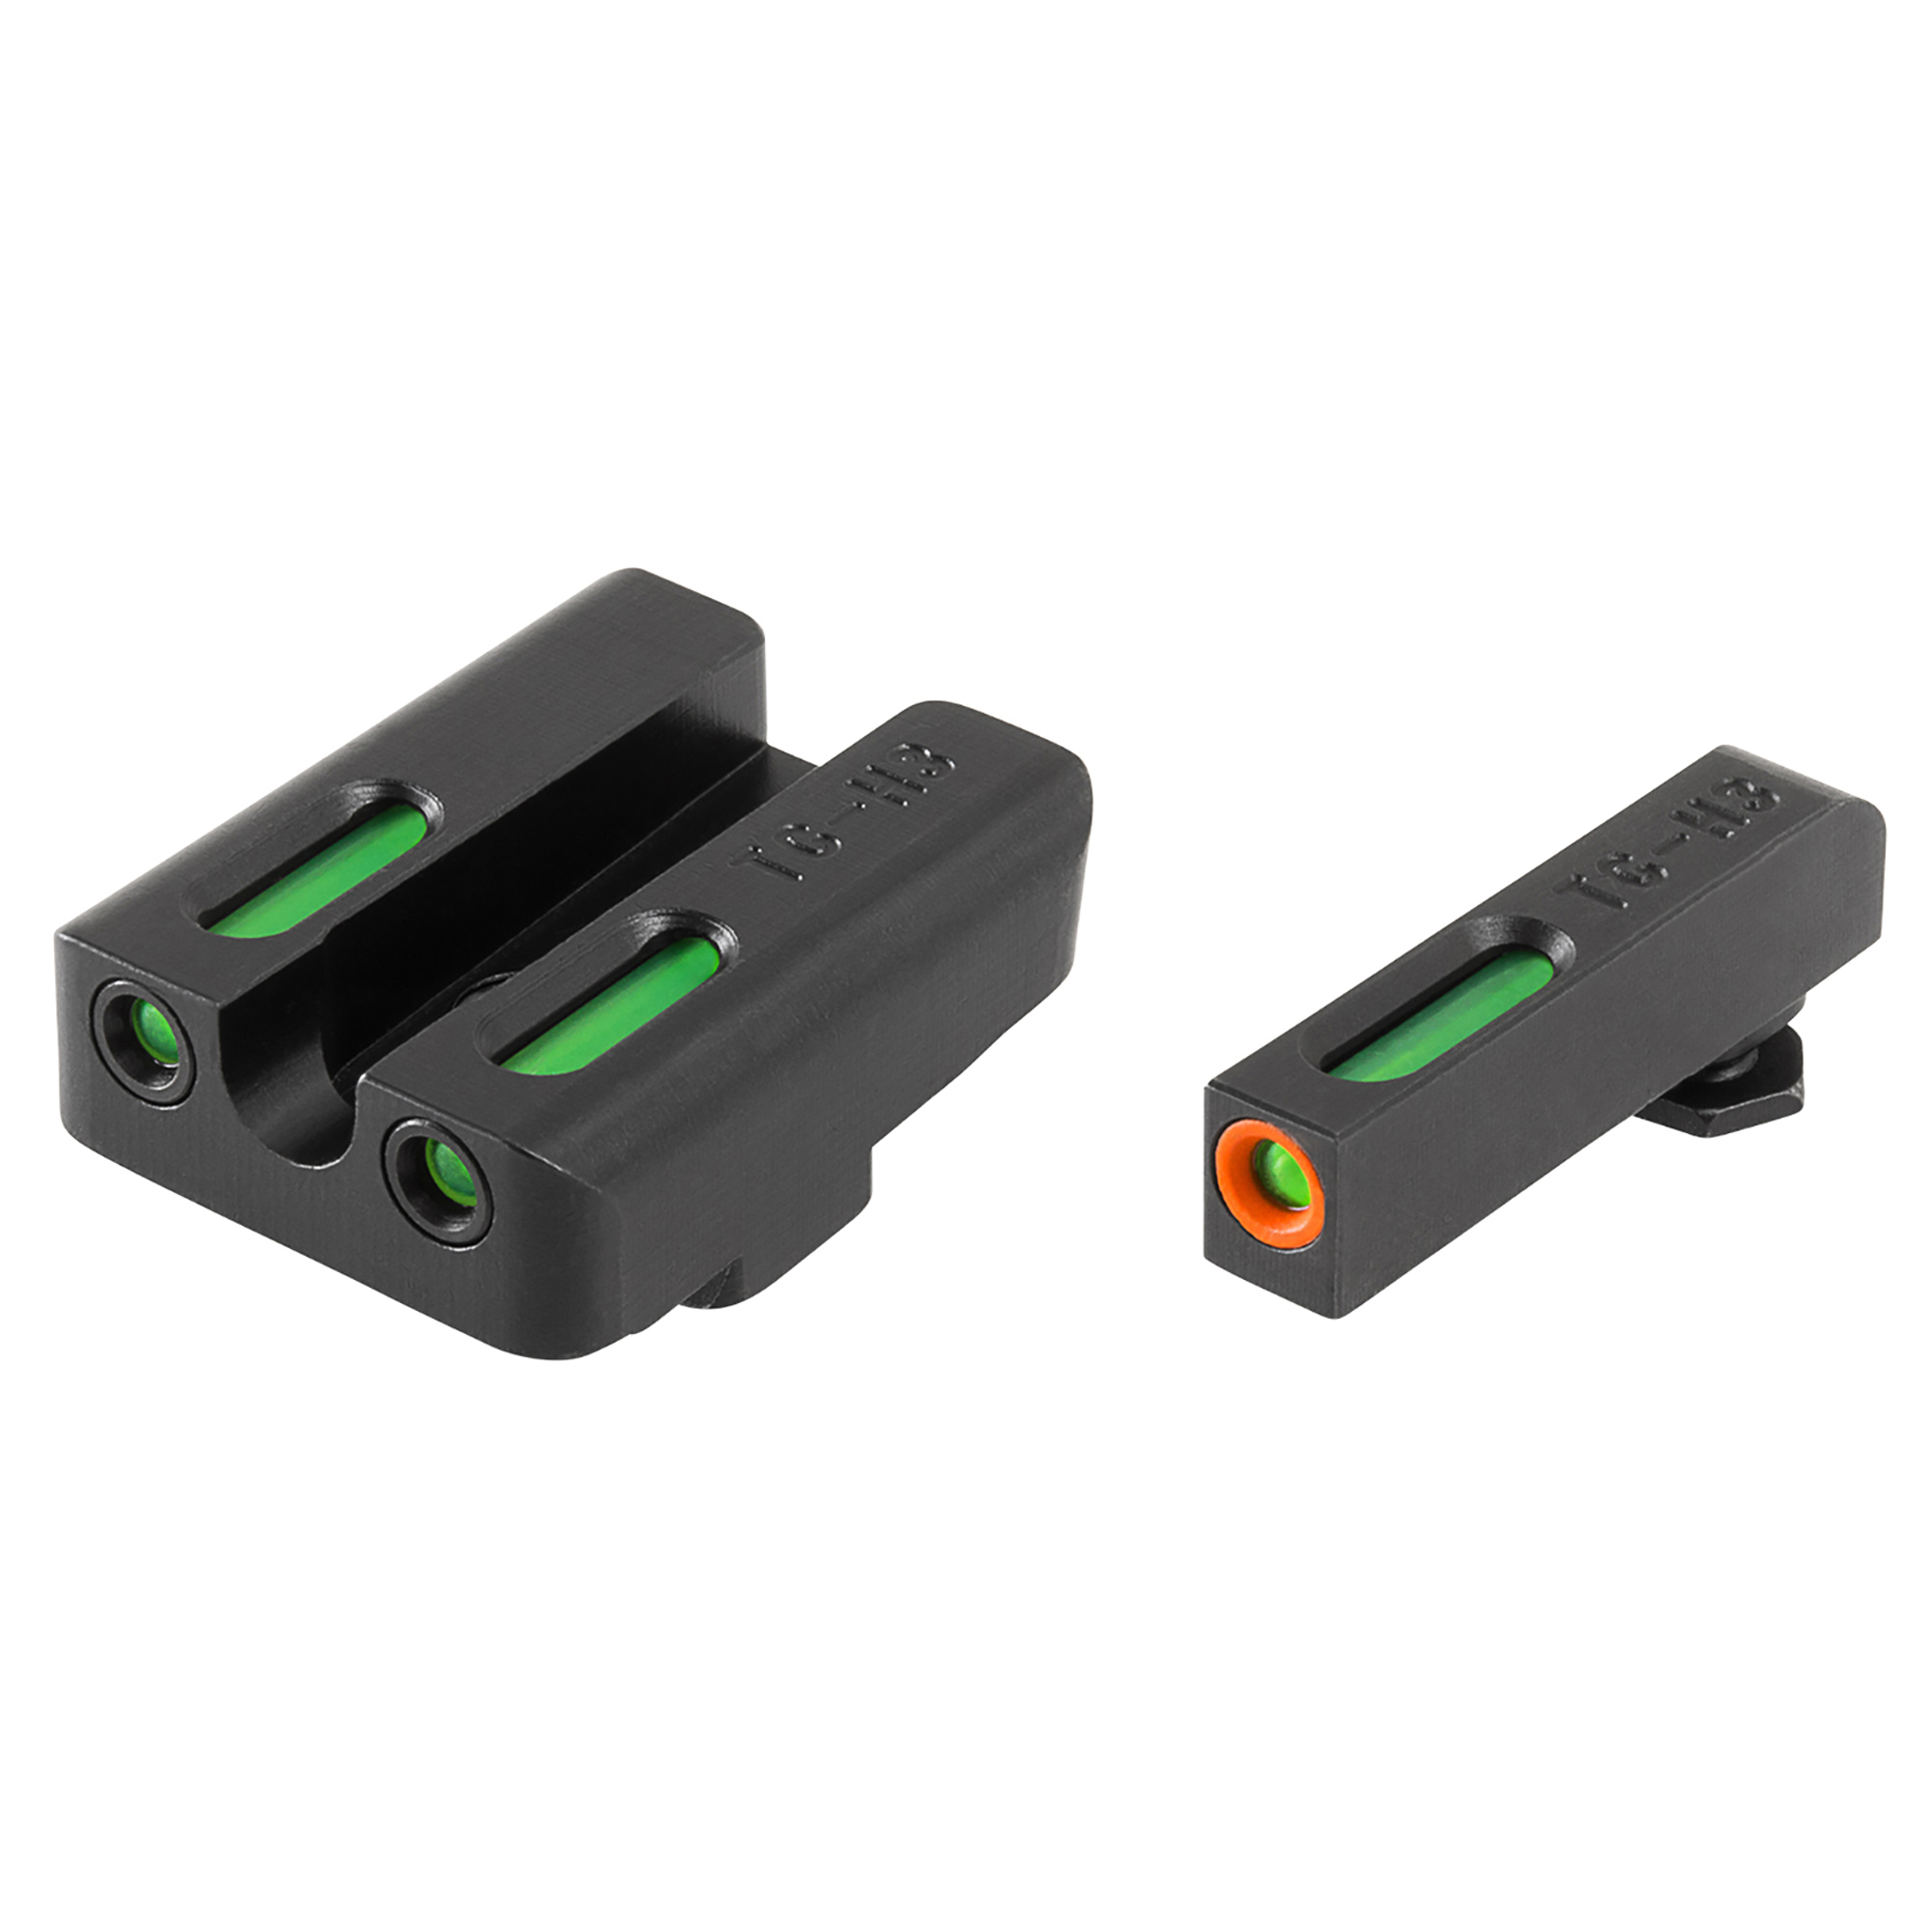 """They created the original TFO(R) day / night sight"""" then made it virtually indestructible with their hermetically-sealed TFX(TM) sights. Now"""" they are taking TFX(TM) technology to the next level for professionals and shooters who demand maximum performance from their handguns-providing ultimate reliability"""" accuracy"""" and brightness no matter how tough things get."""